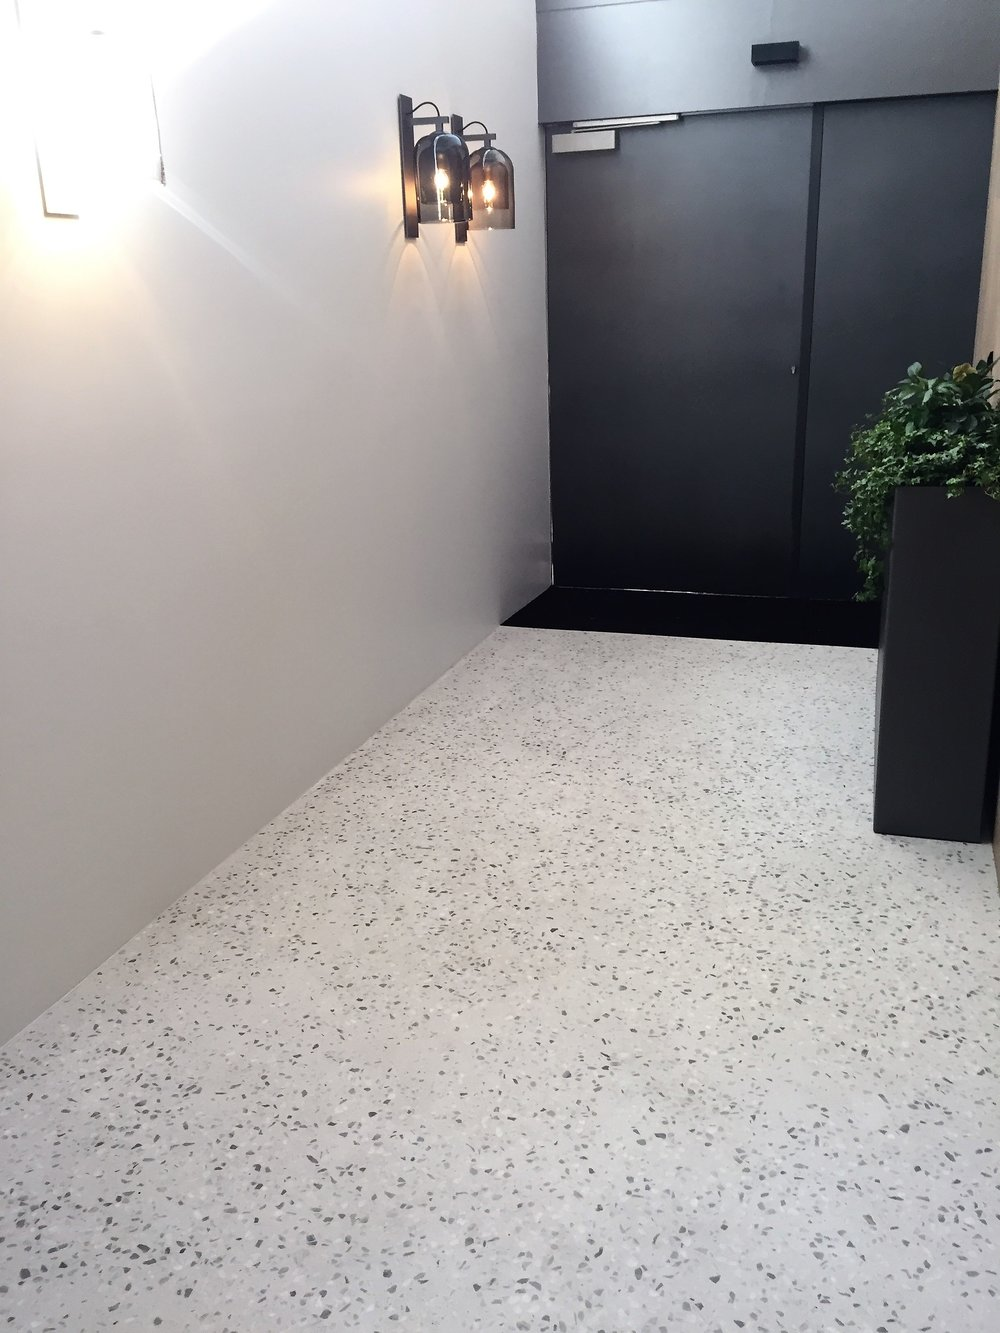 Covet concrete overlay shwroom.jpg